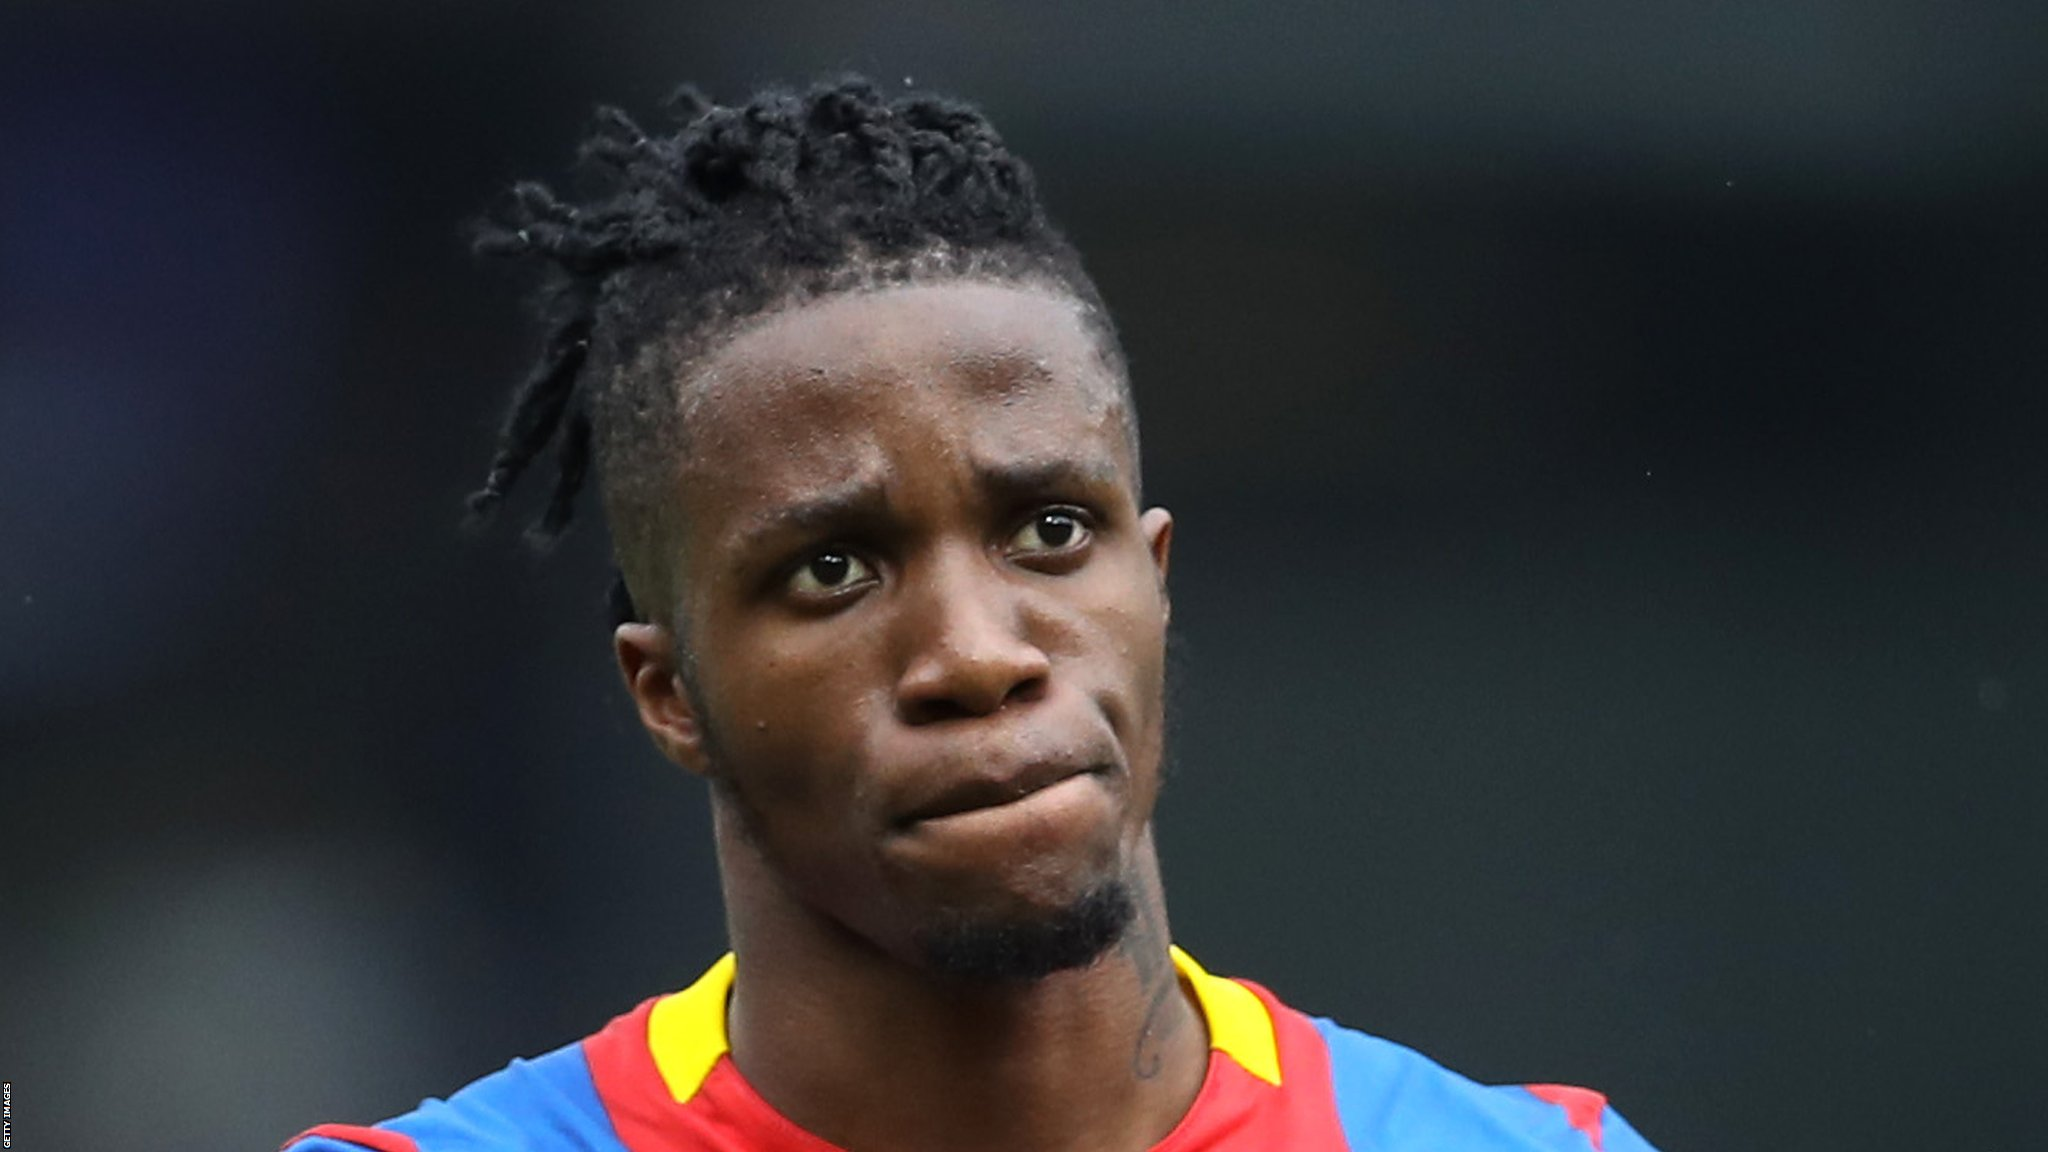 Wilfried Zaha: There is an agenda against me, says Crystal Palace winger | BBC